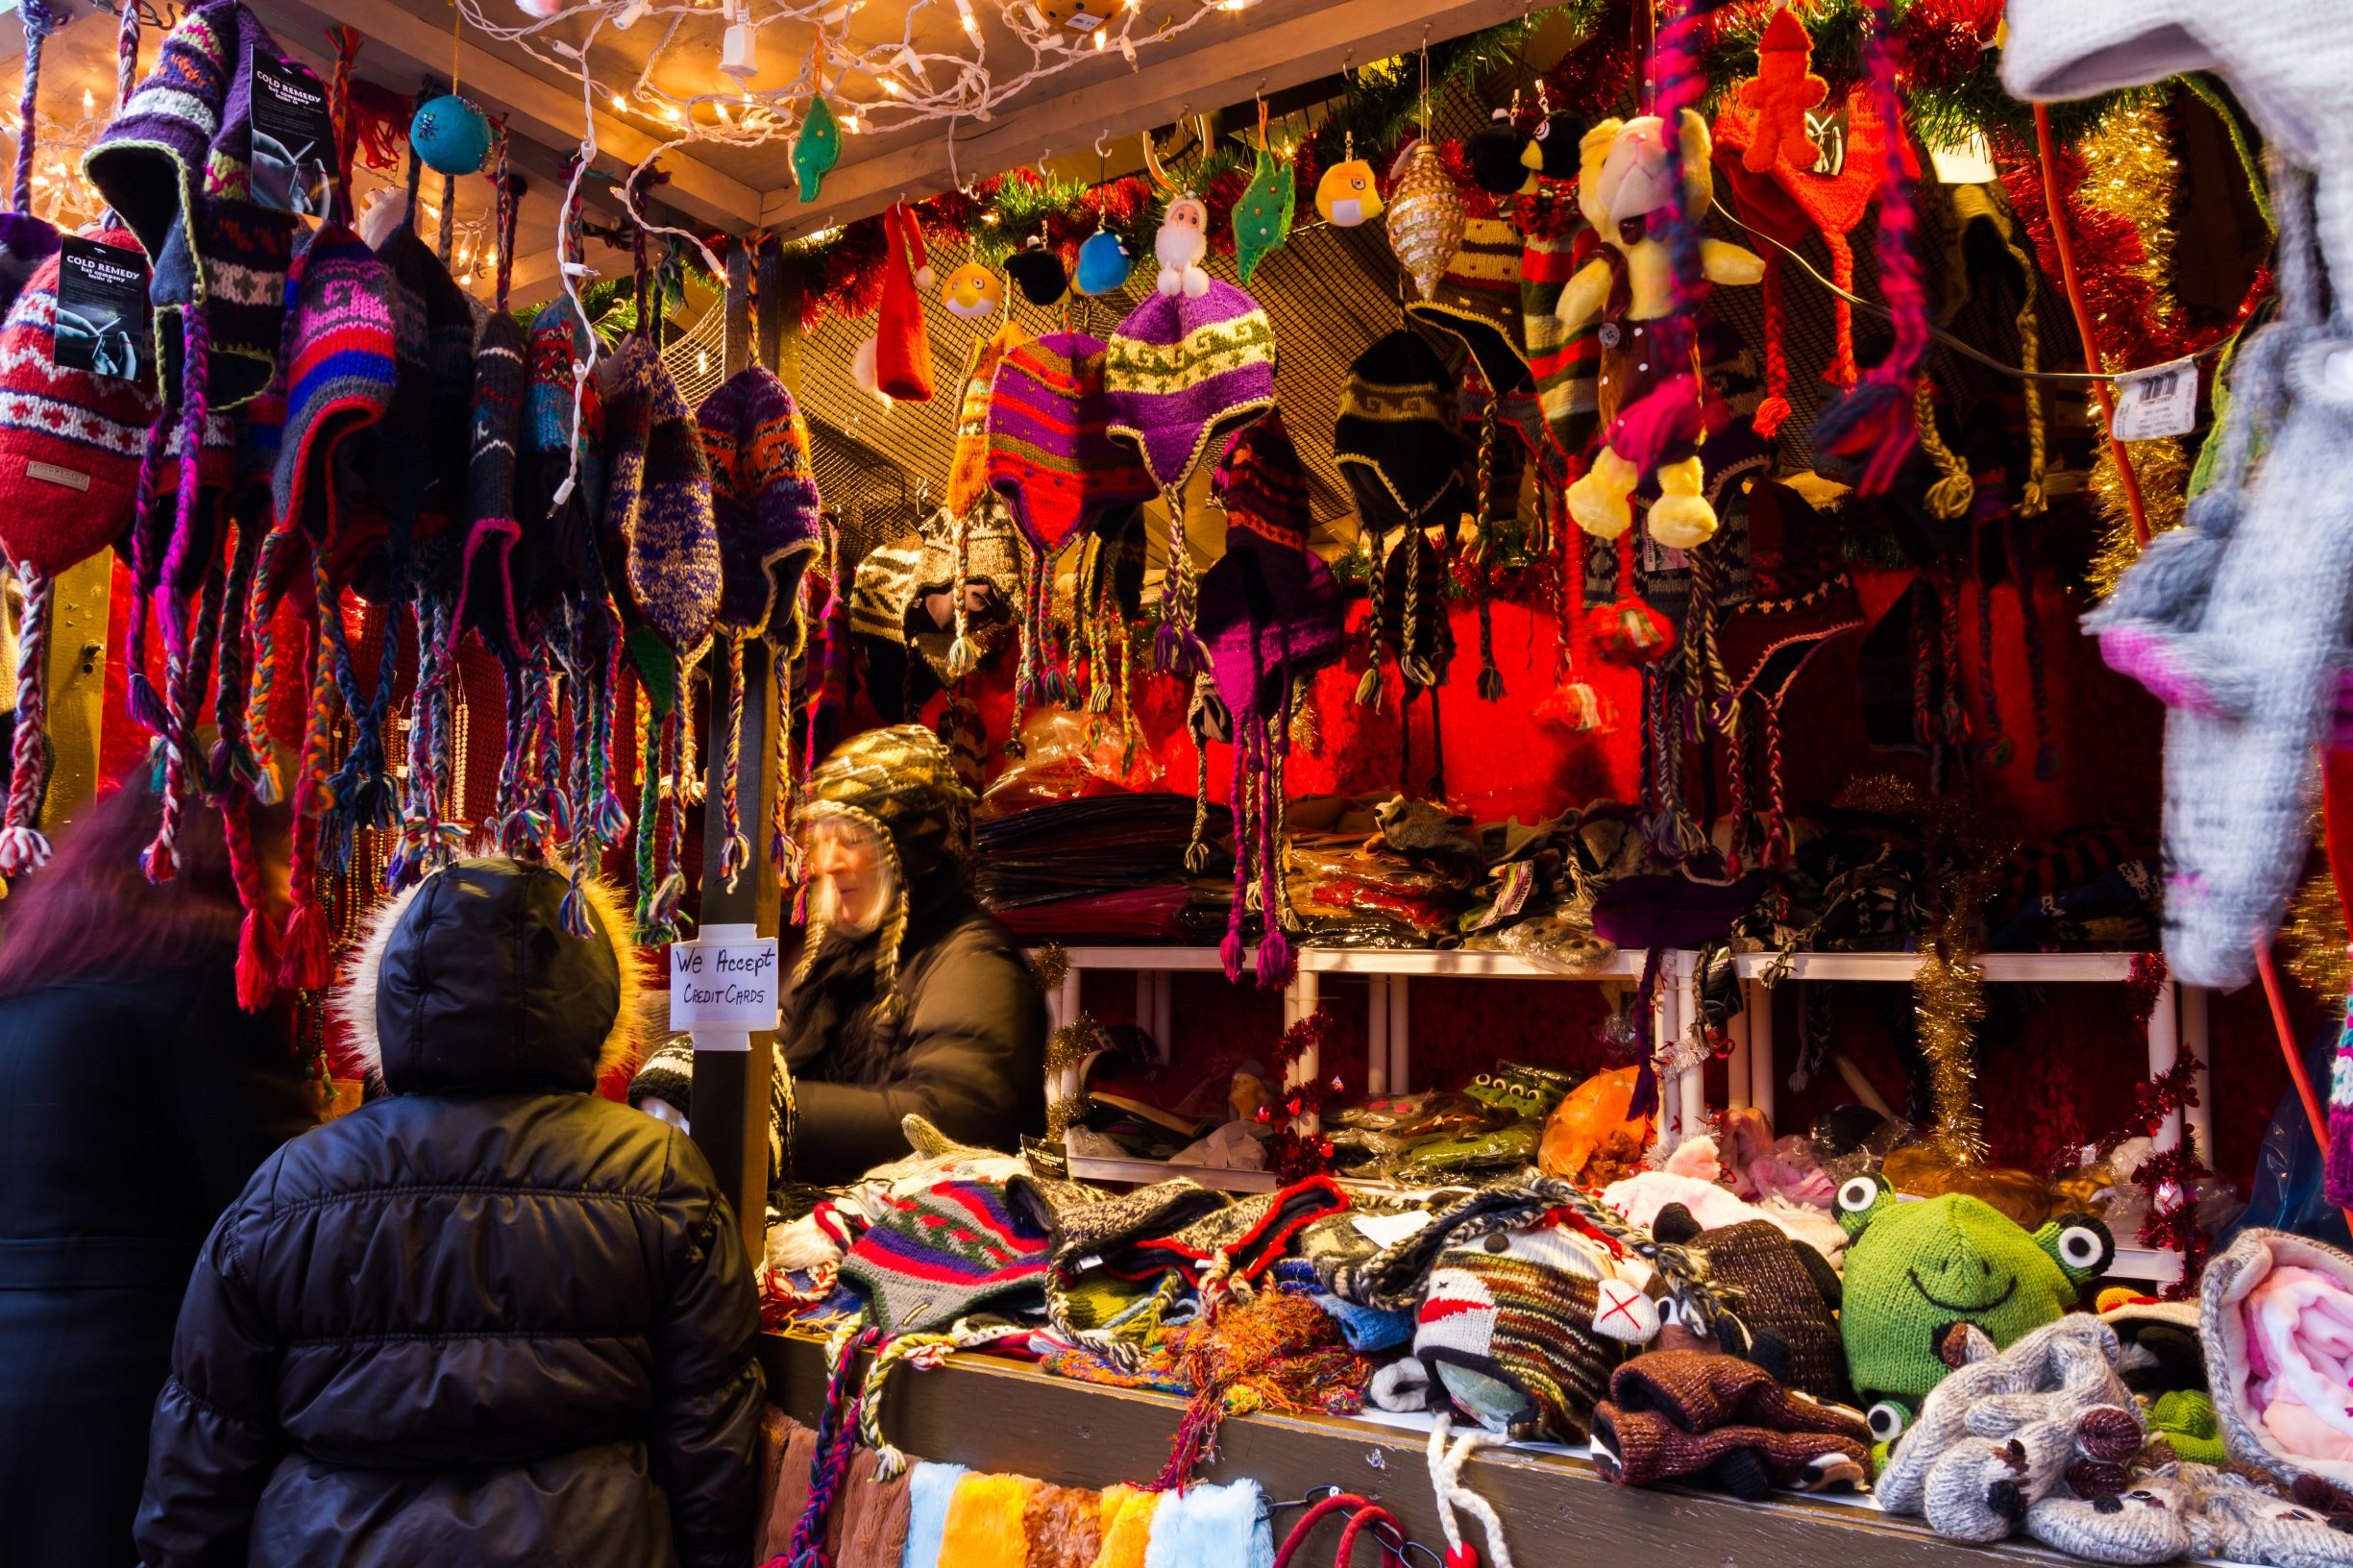 Photo of alpaca wool gifts vendor at a ChristKindl Market, one of the best Christmas markets in the USA.